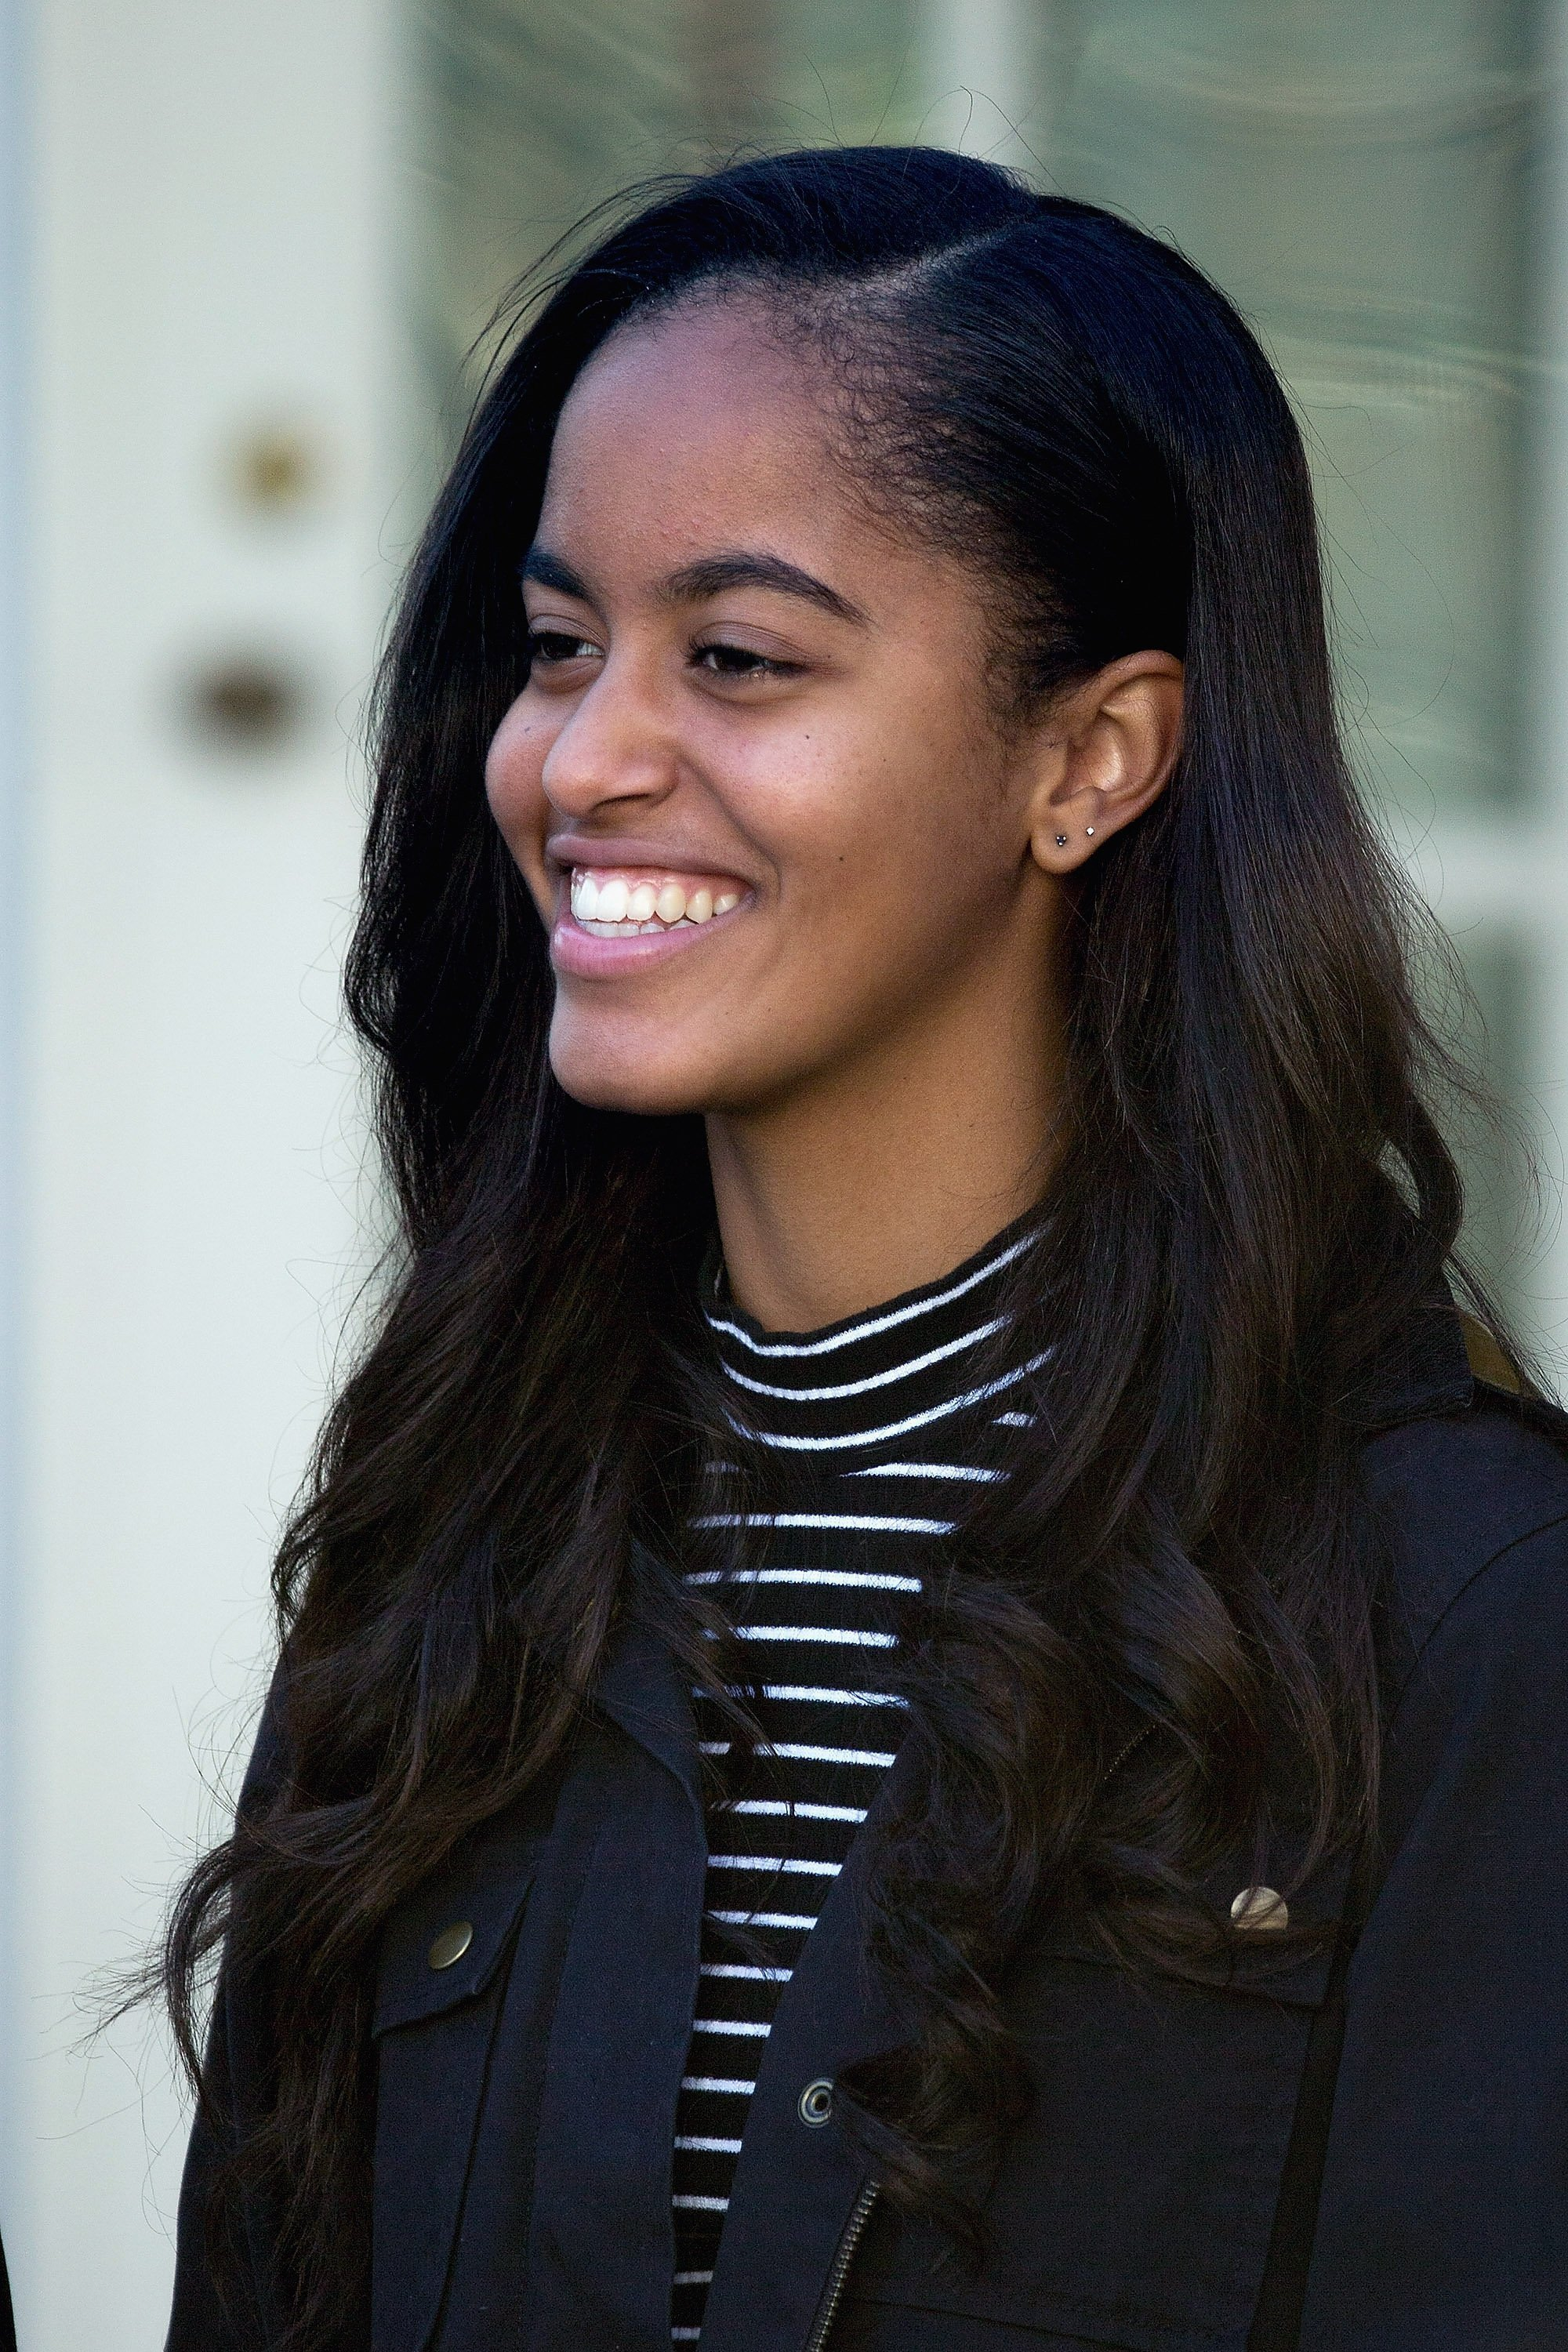 Malia Obama attends the turkey pardoning ceremony, November 2015. | Photo: GettyImages/Global Images of Ukraine